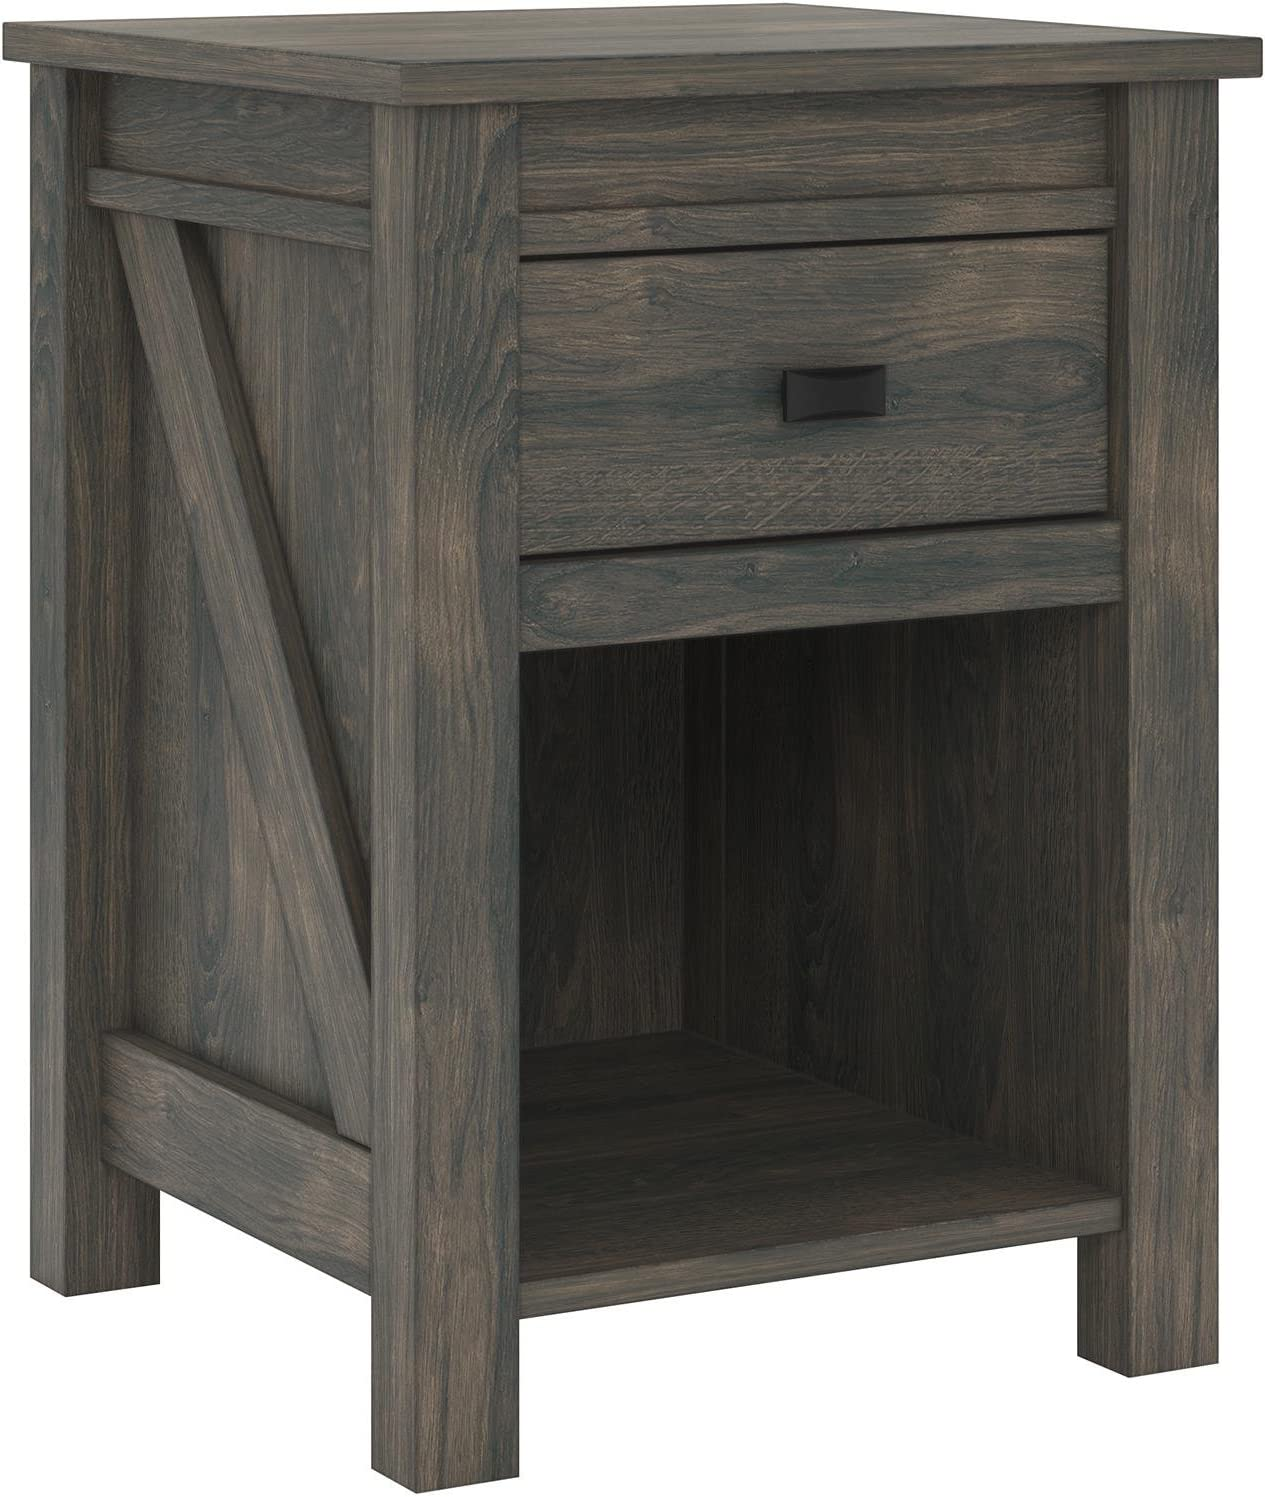 Ameriwood Home Farmington, Nightstand, Weathered Oak